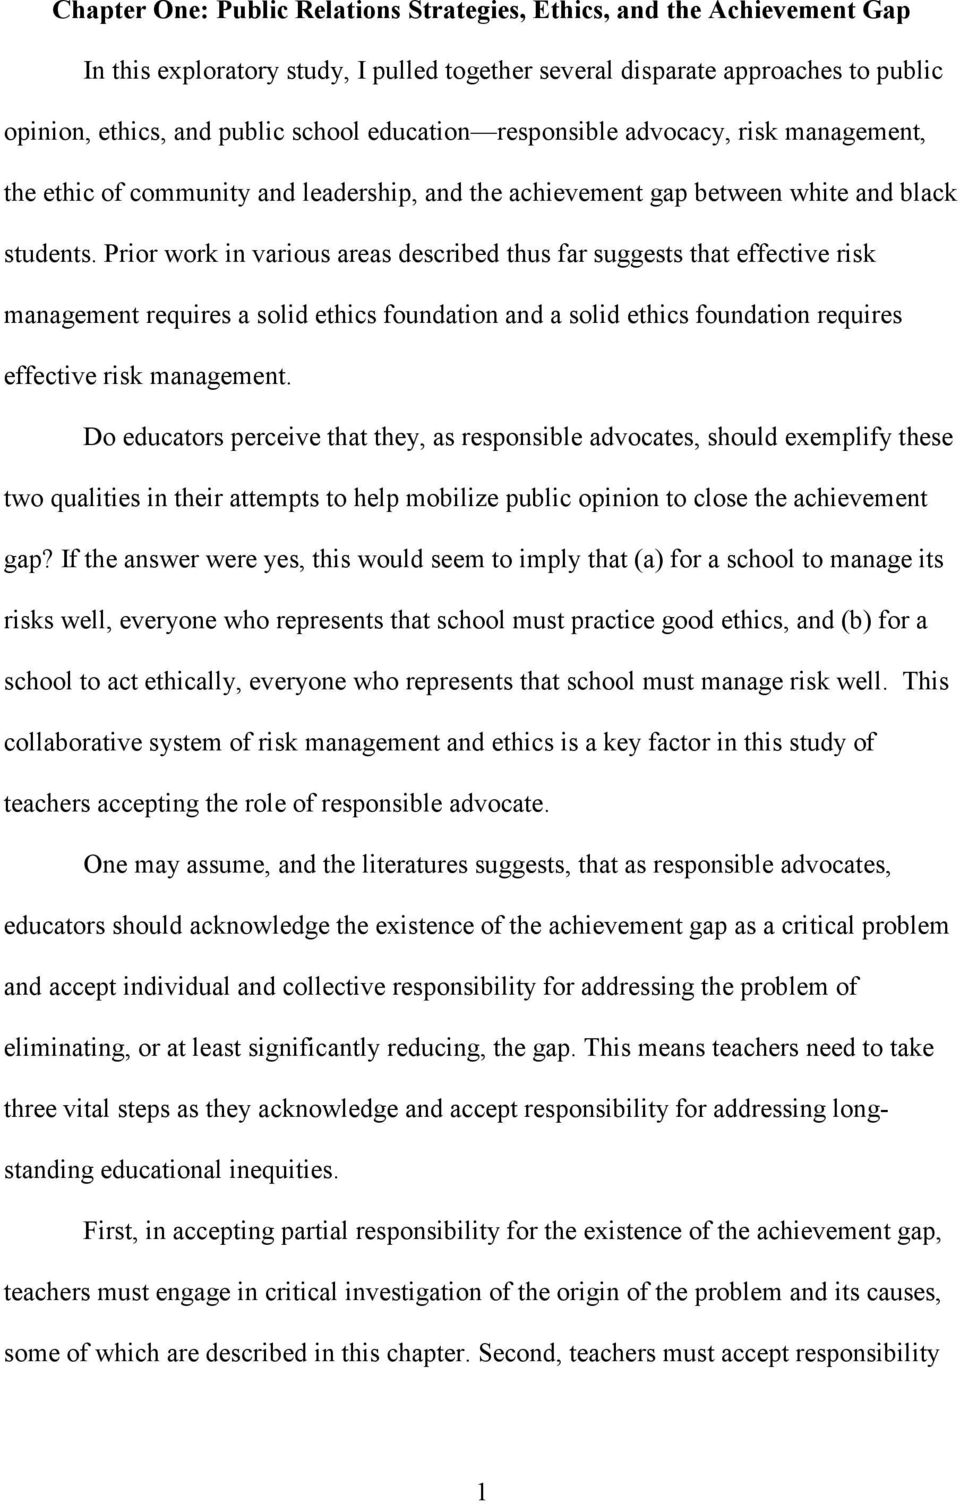 Prior work in various areas described thus far suggests that effective risk management requires a solid ethics foundation and a solid ethics foundation requires effective risk management.